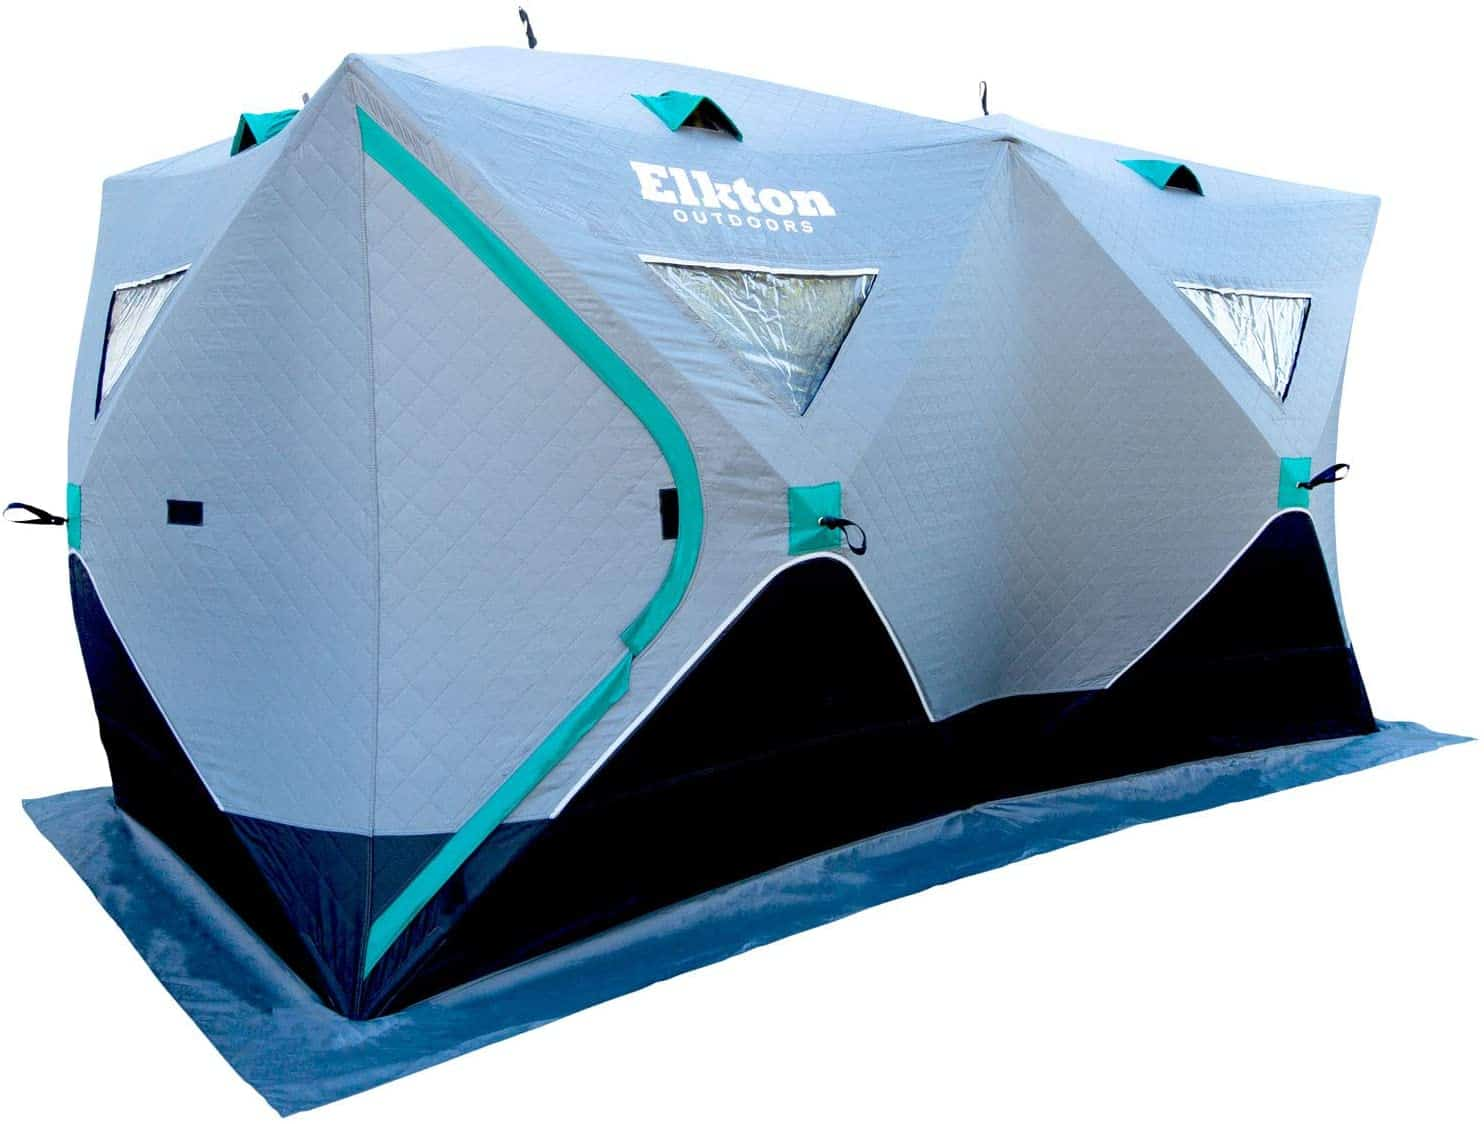 Portable Ice Fishing Tent by Elkton